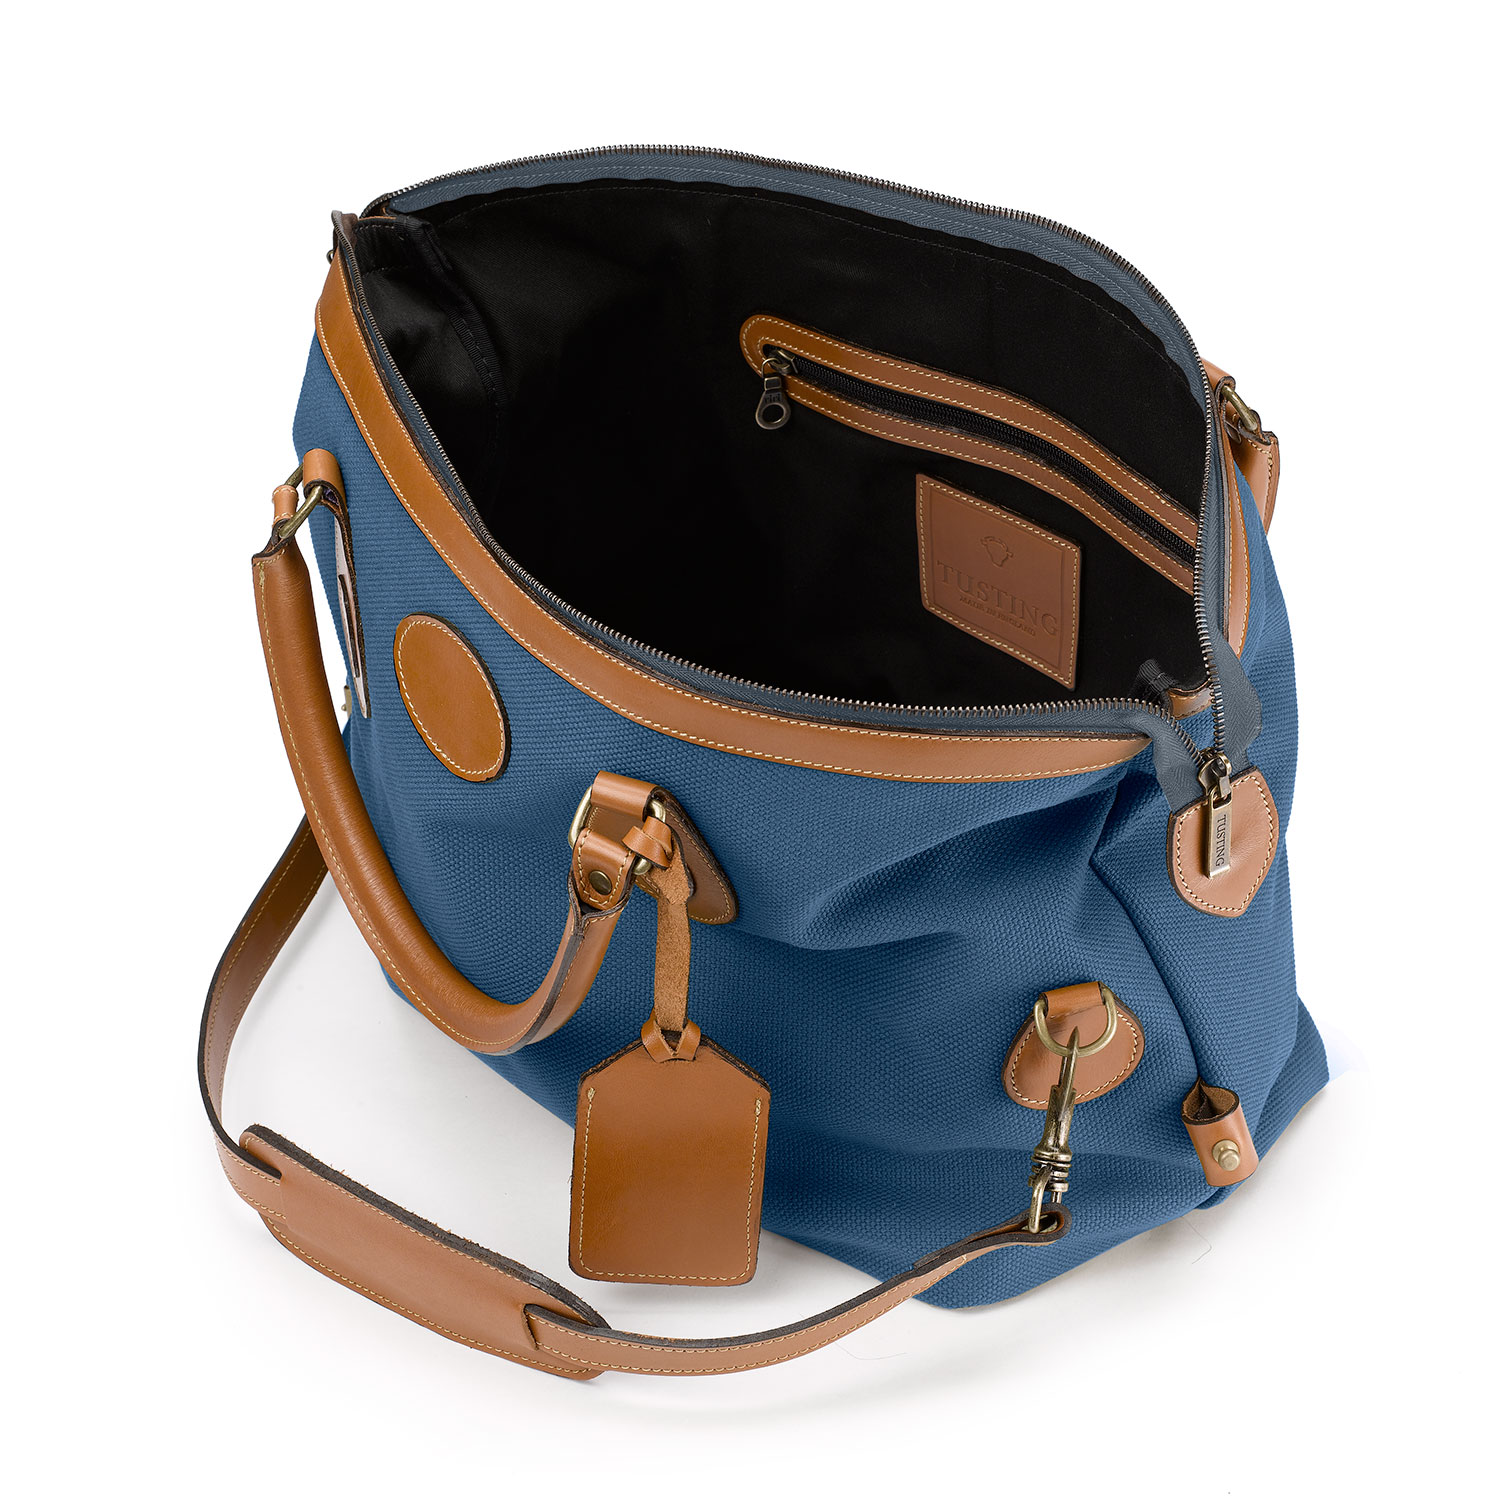 Tusting Explorer Tasche, medium, denim blue 5